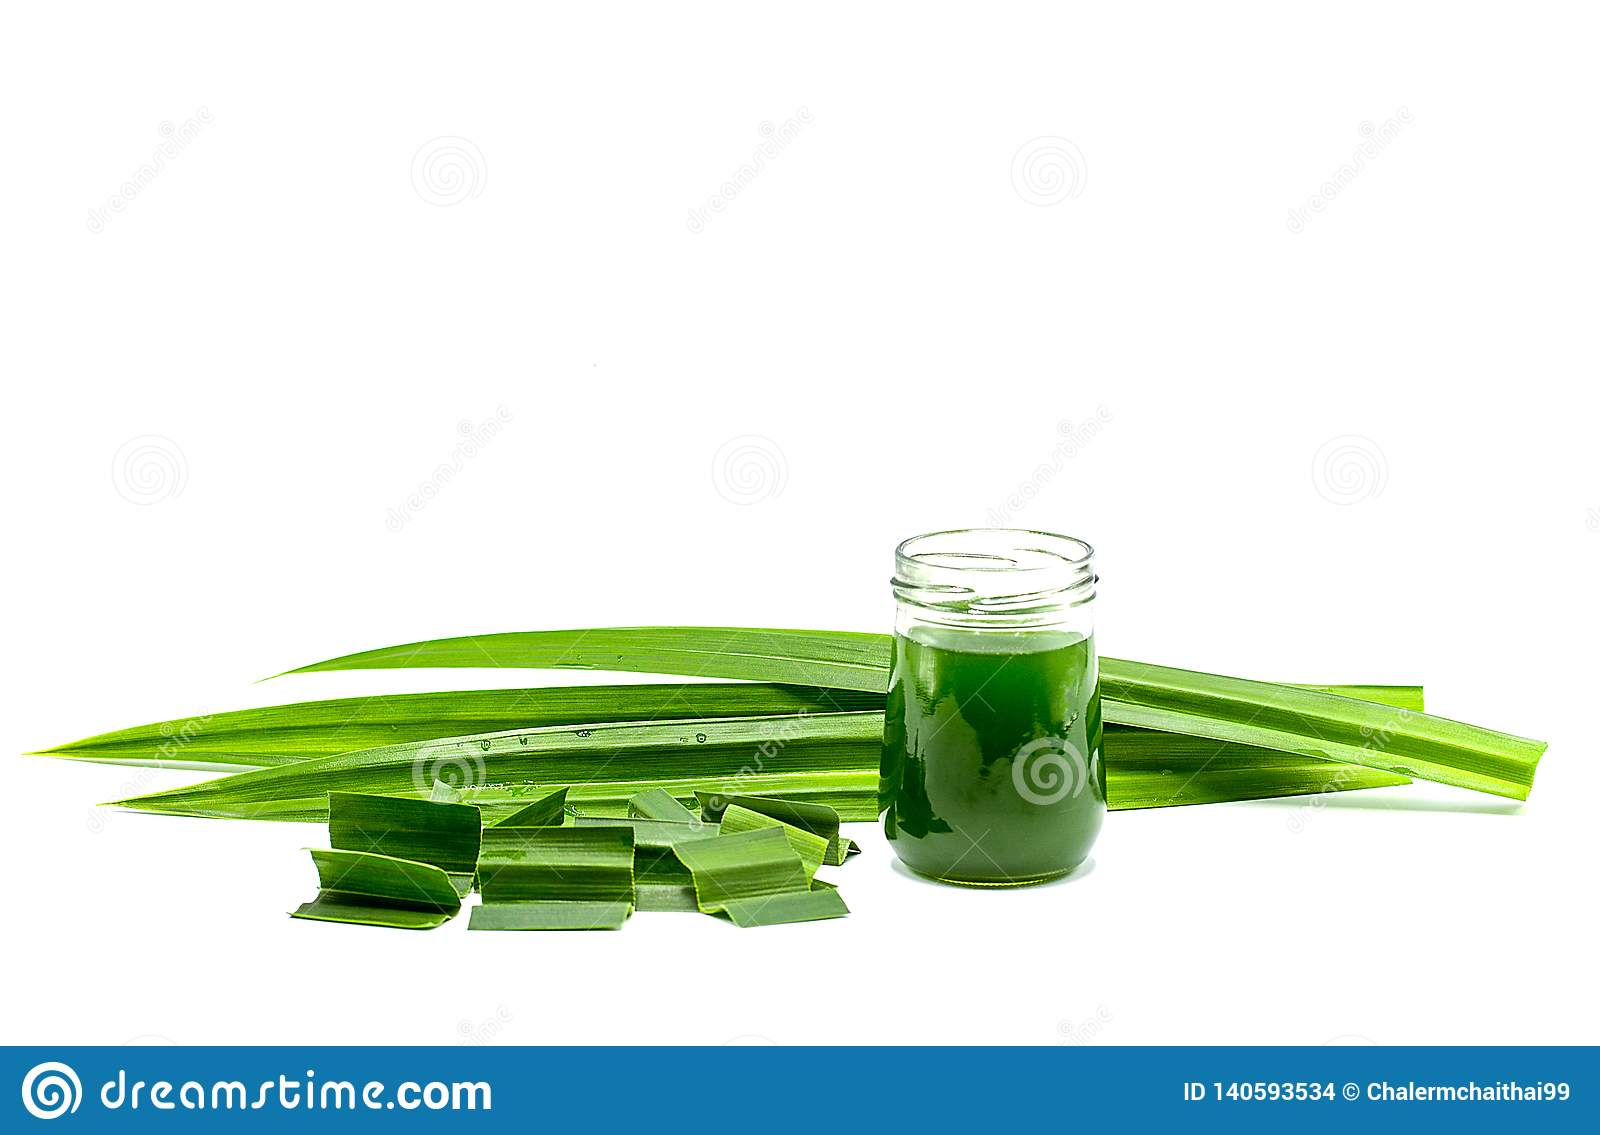 Glass of pandan juice and fresh Pandan leaves isolated on white background,copy space